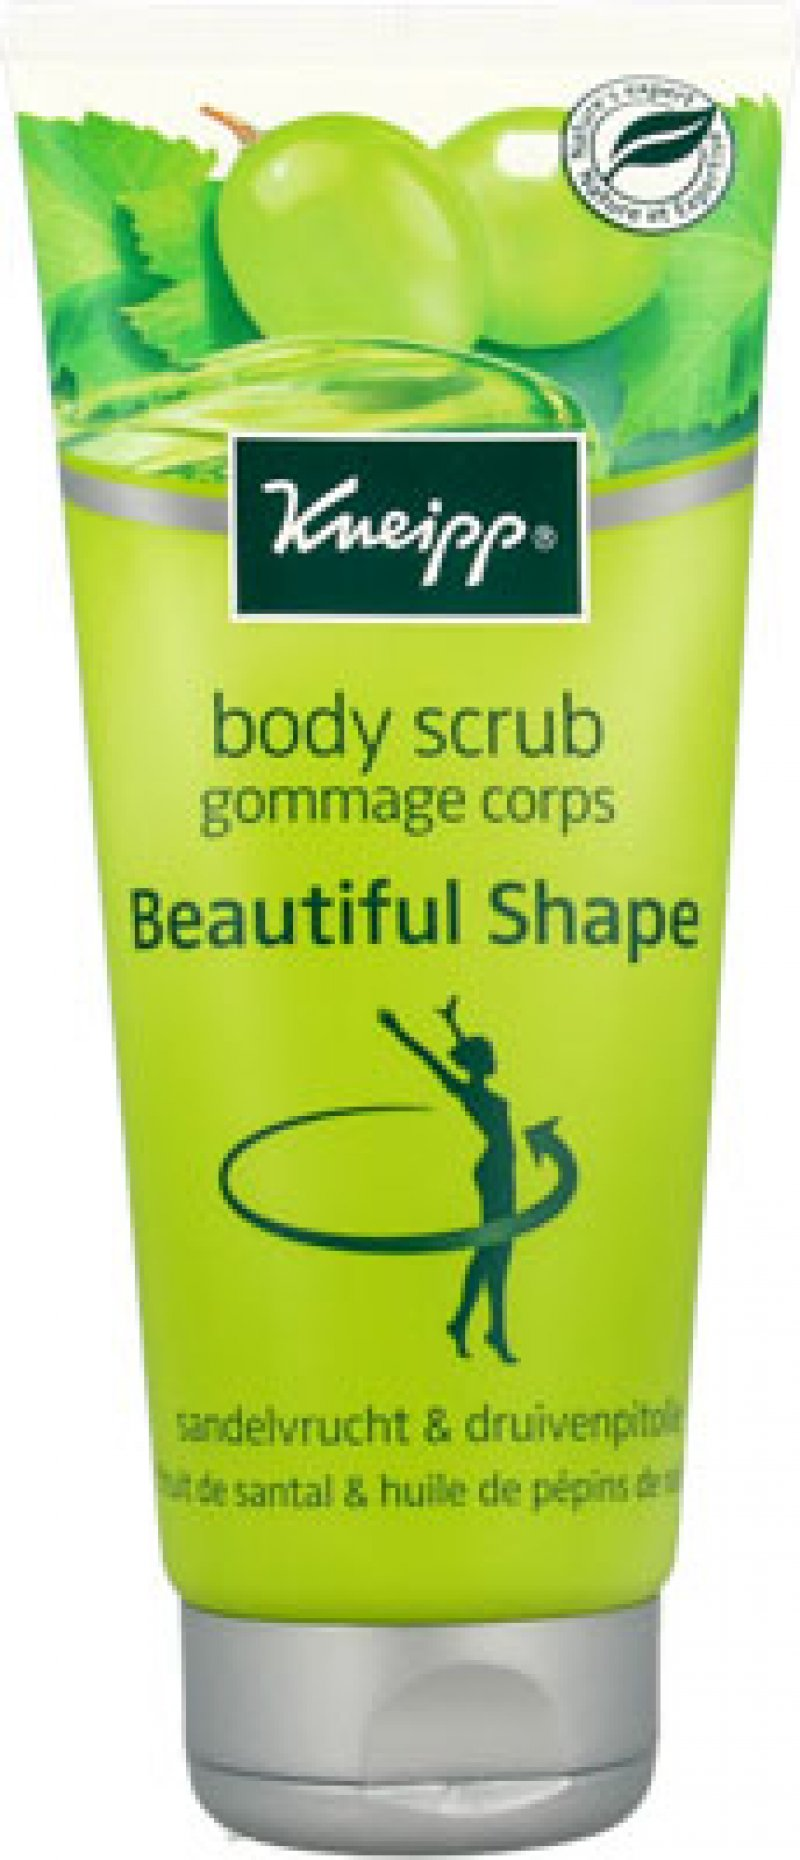 Body scrub - beautiful Shape